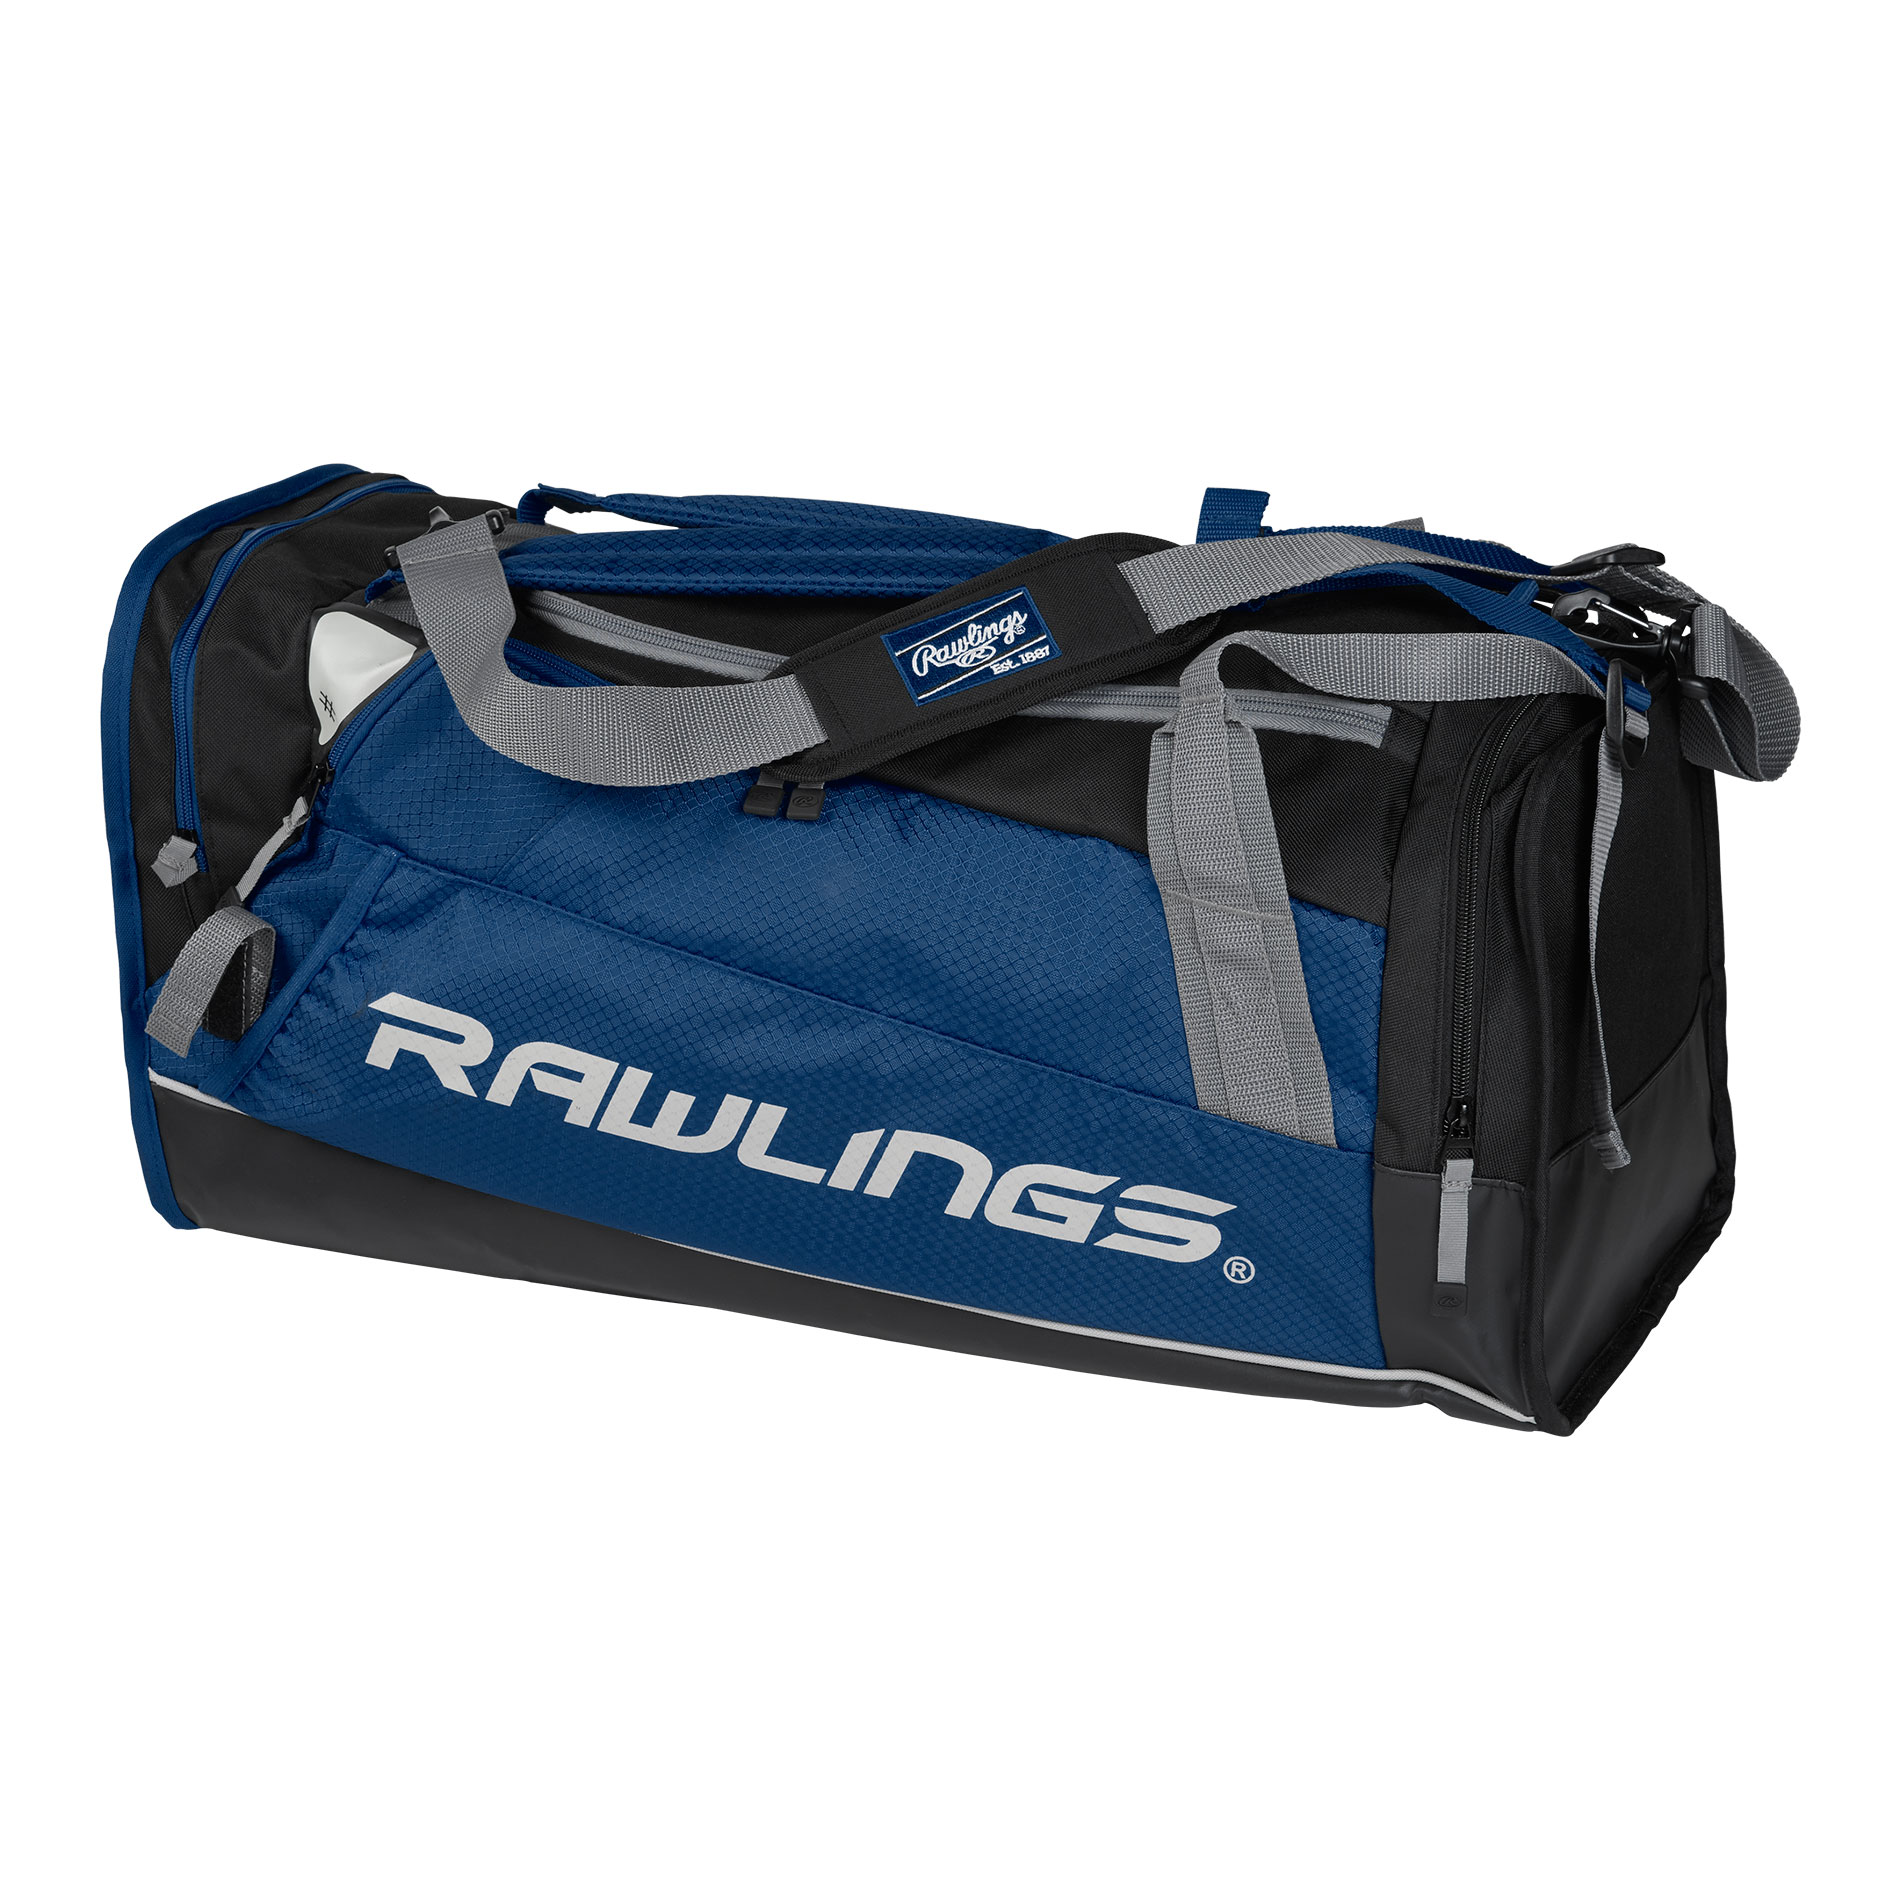 Rawlings R601 Hybrid Baseball Bat Pack Duffle